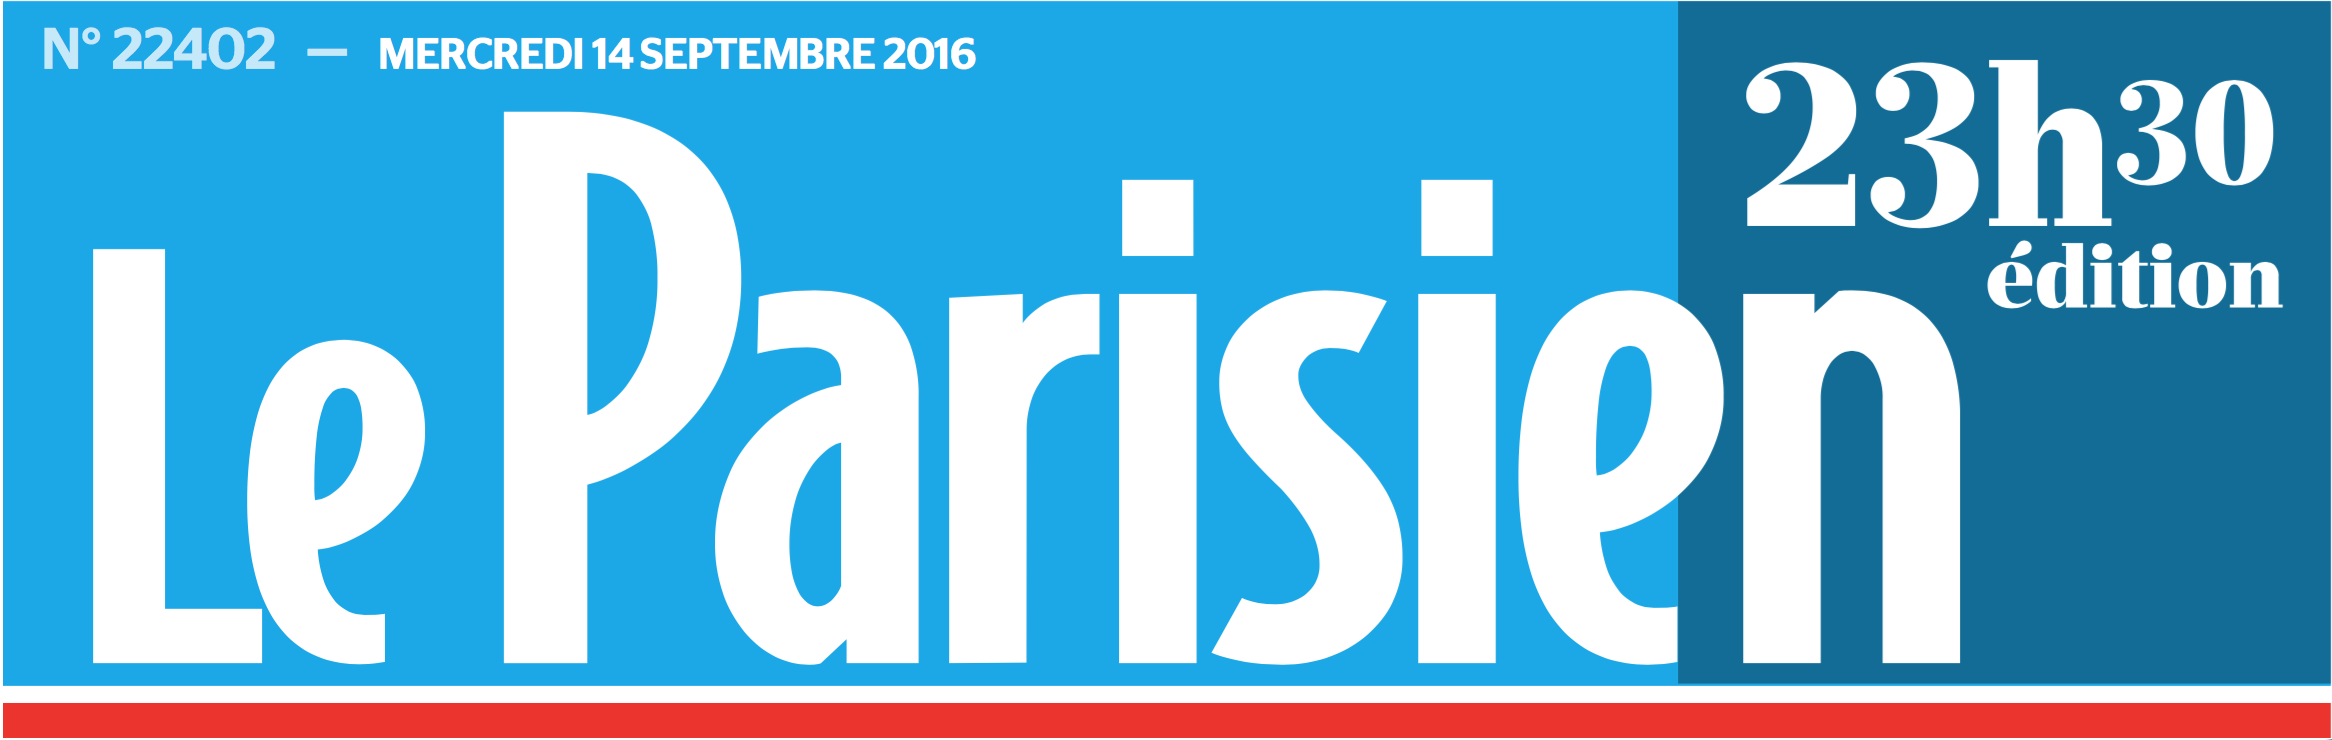 leparisien-header